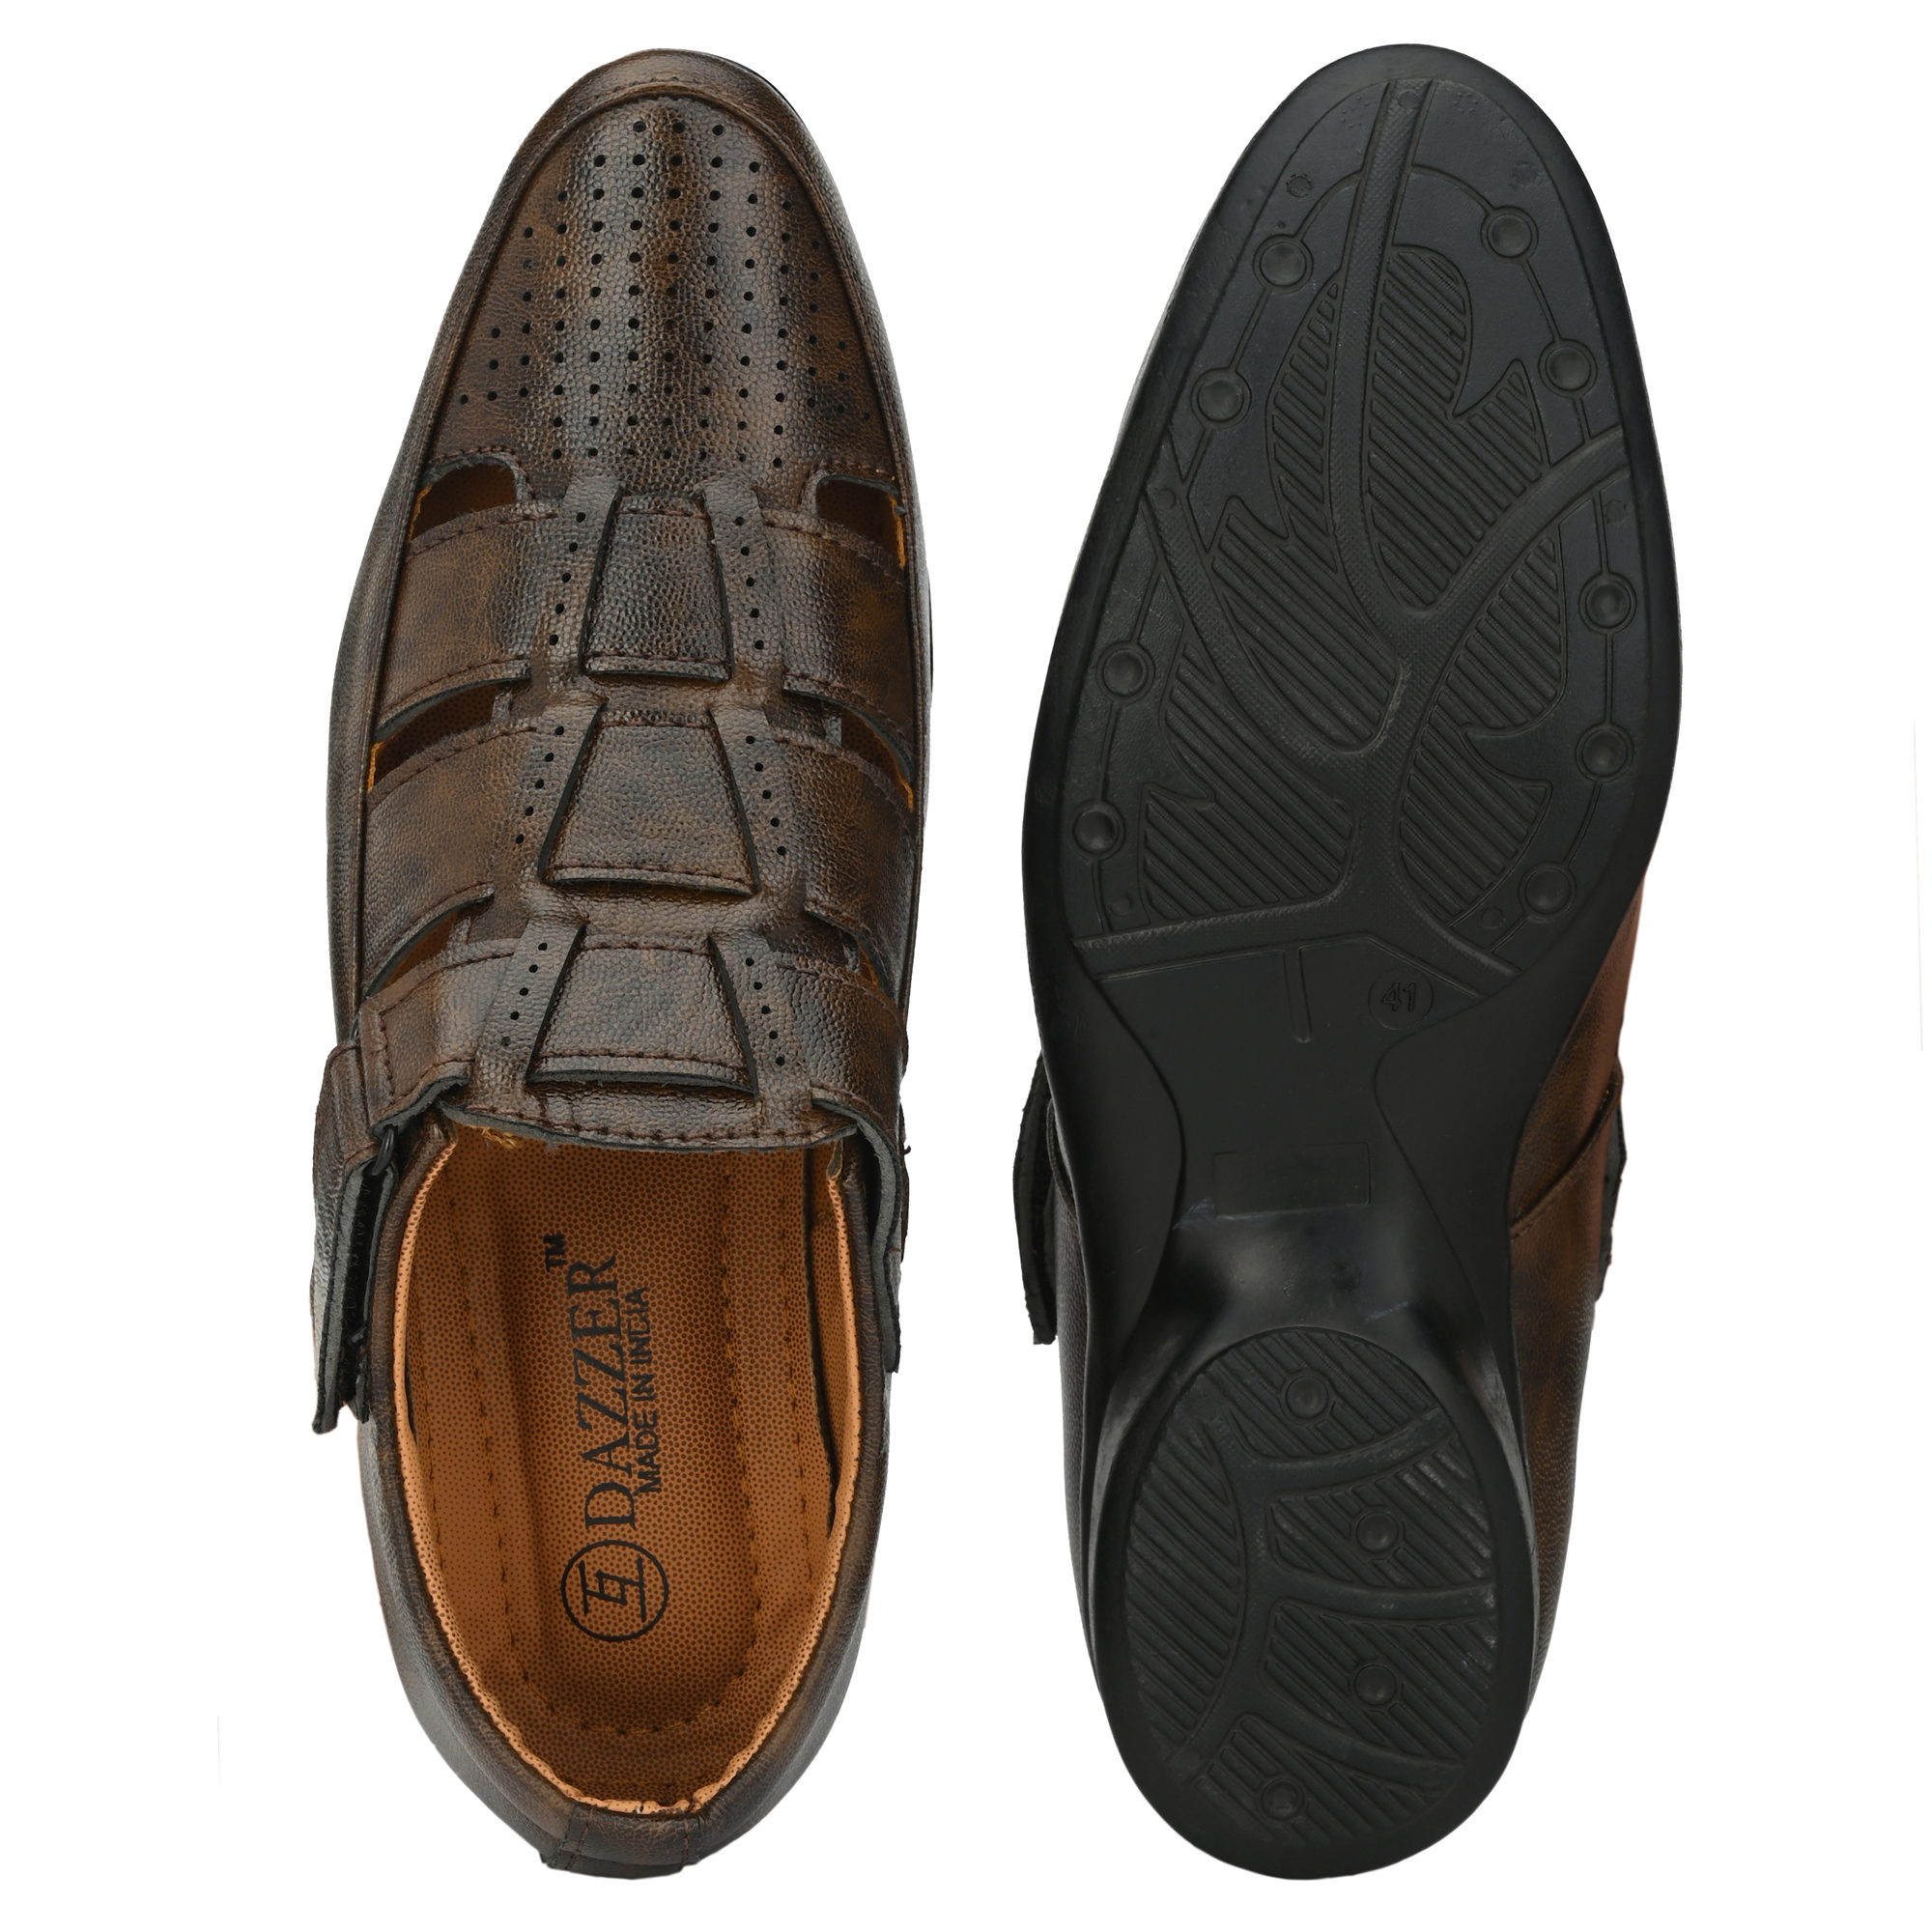 Dazzer 650 Velcro Synthetic Sandals For Men 650Brown (Brown, 6-10, 8 PAIR)